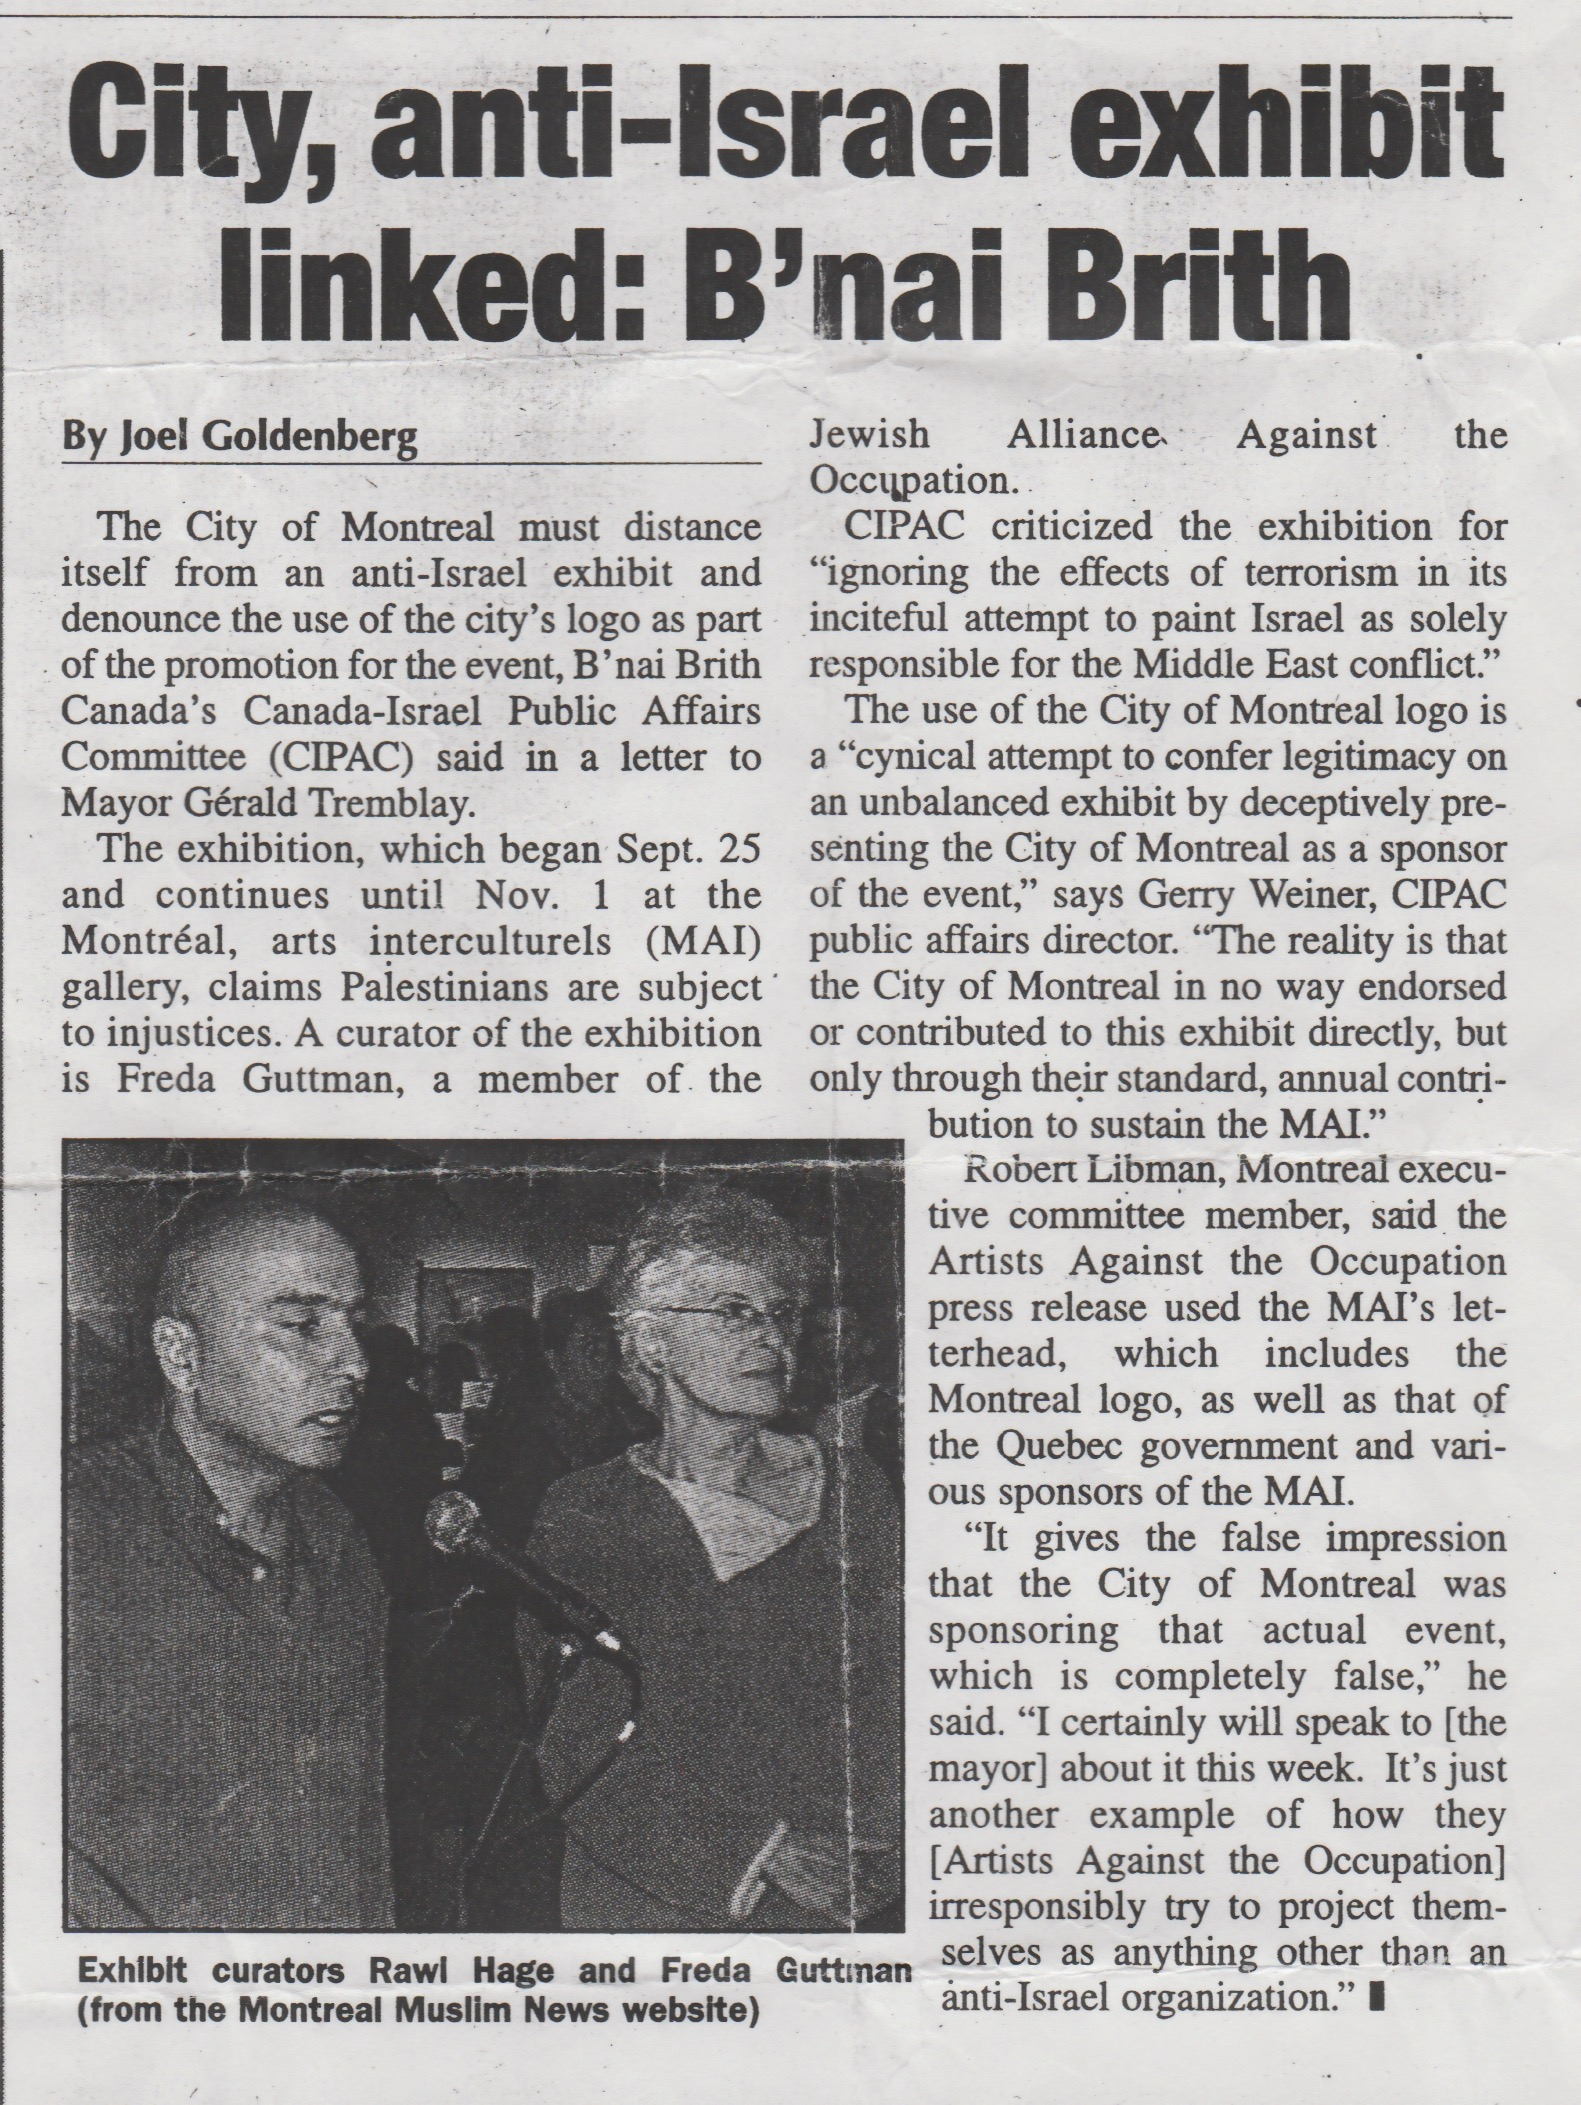 An article about a complaint made by B'nai Brith regarding Artists Against the Occupation